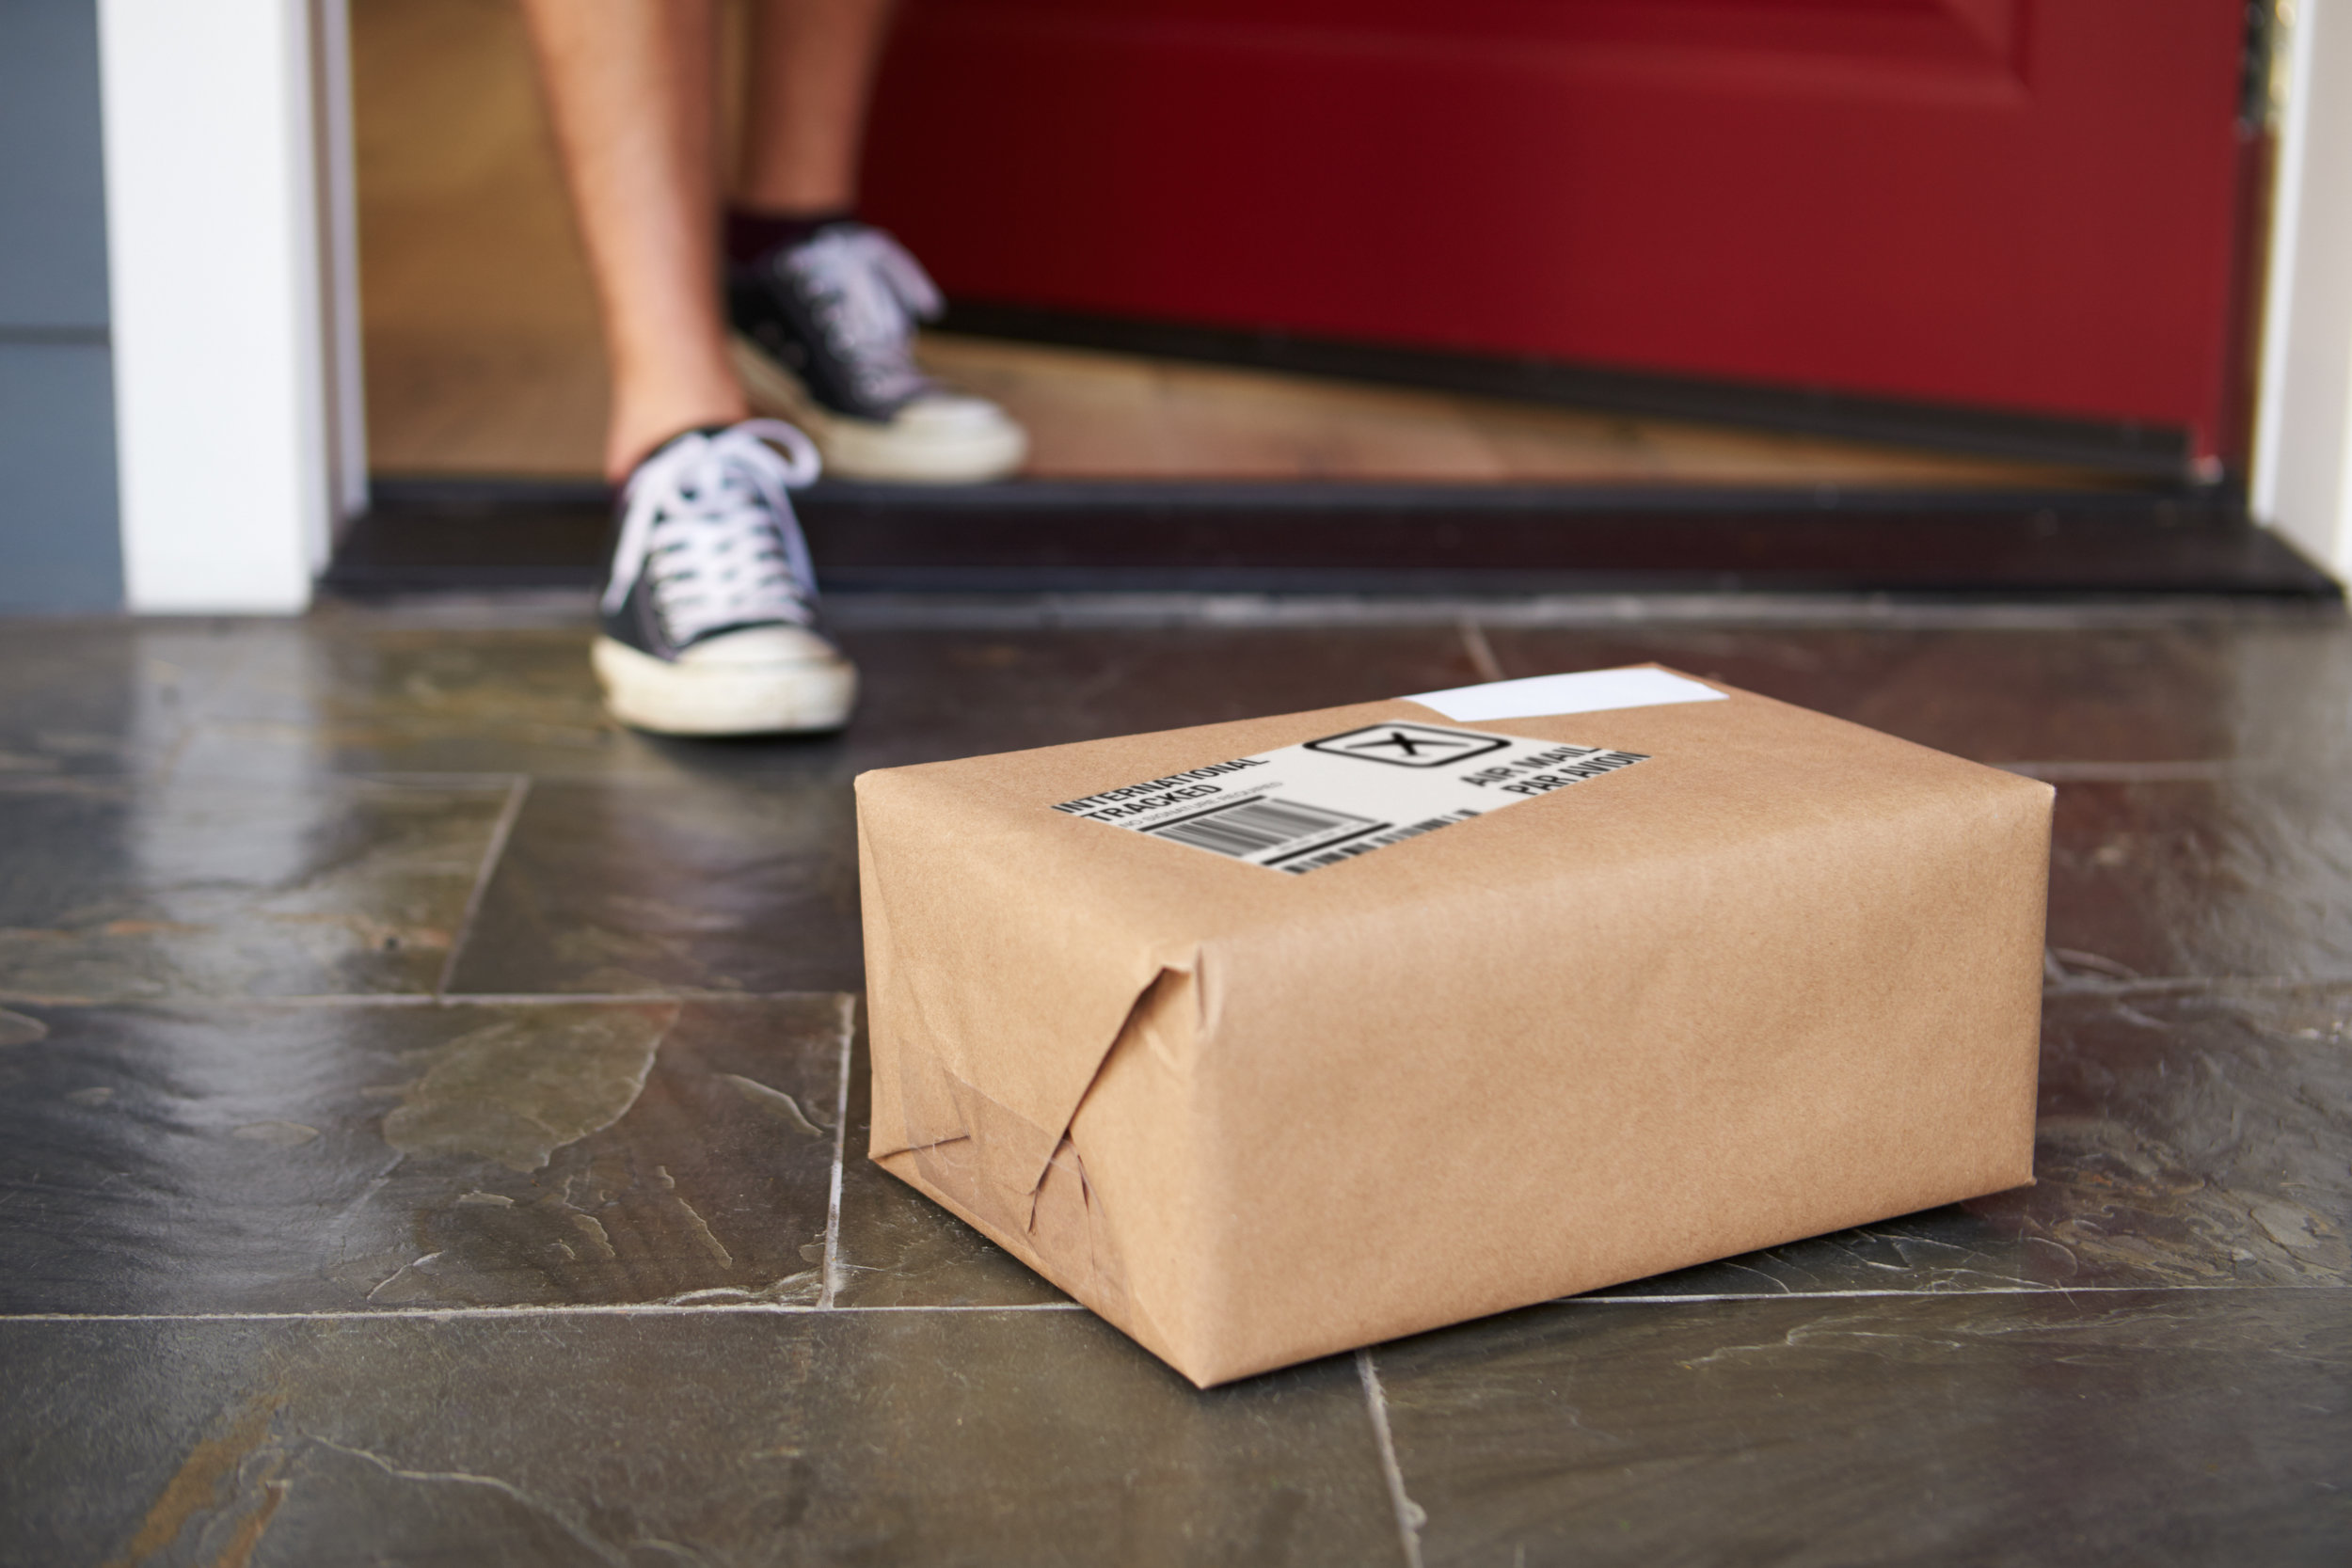 3. Your package is delivered discreetly to your doorstep. -